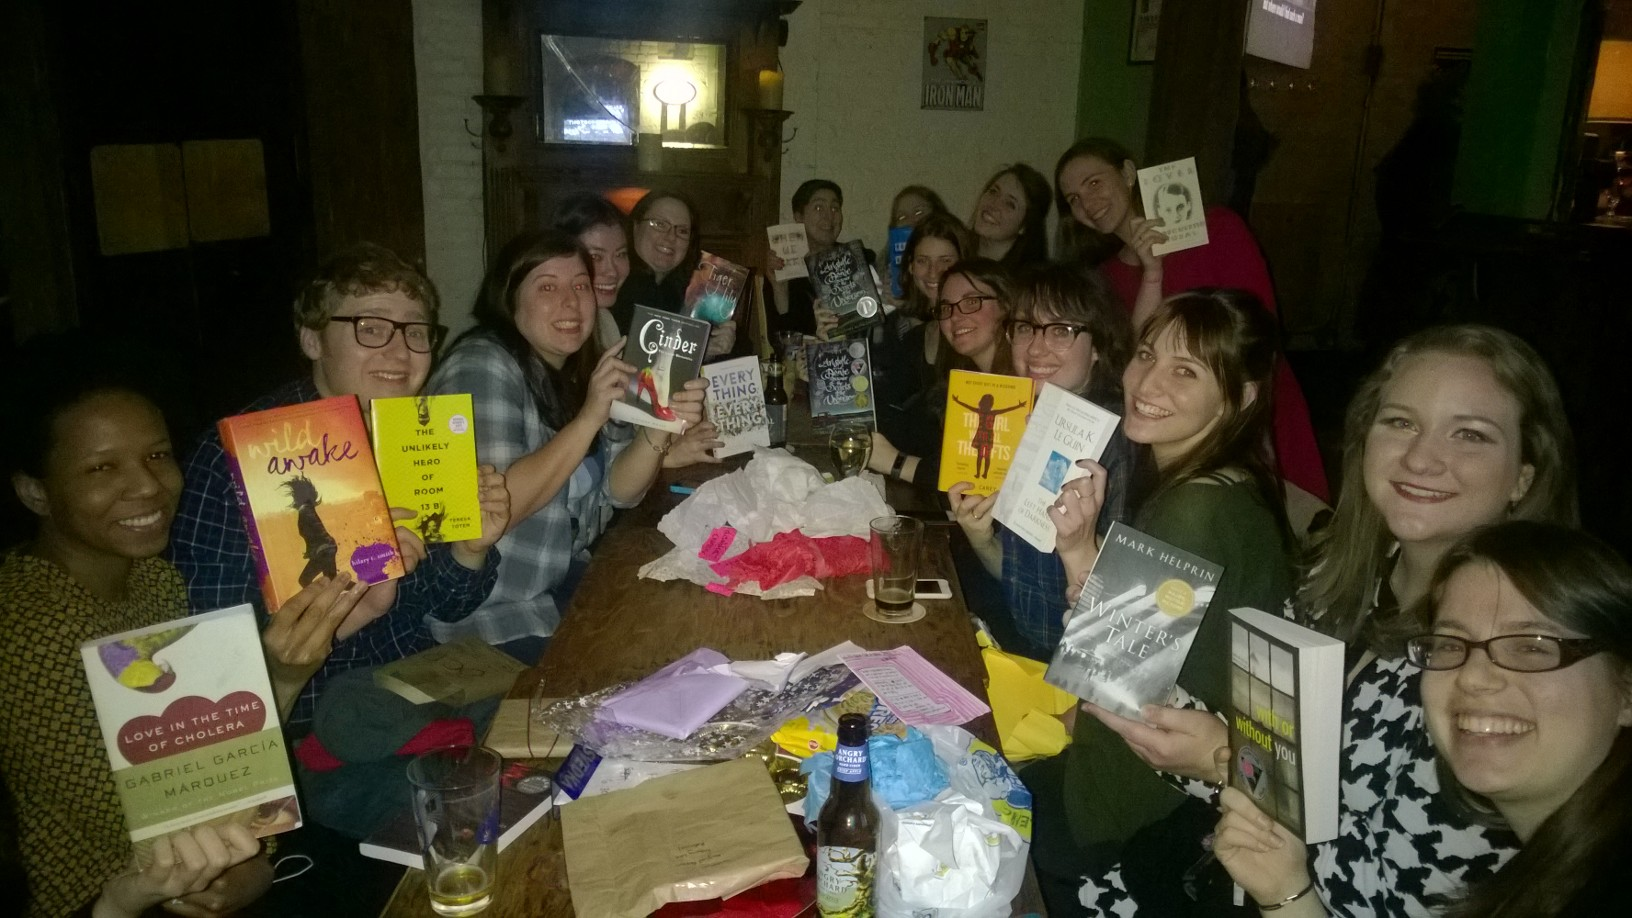 Book Blind Date Group Photo!